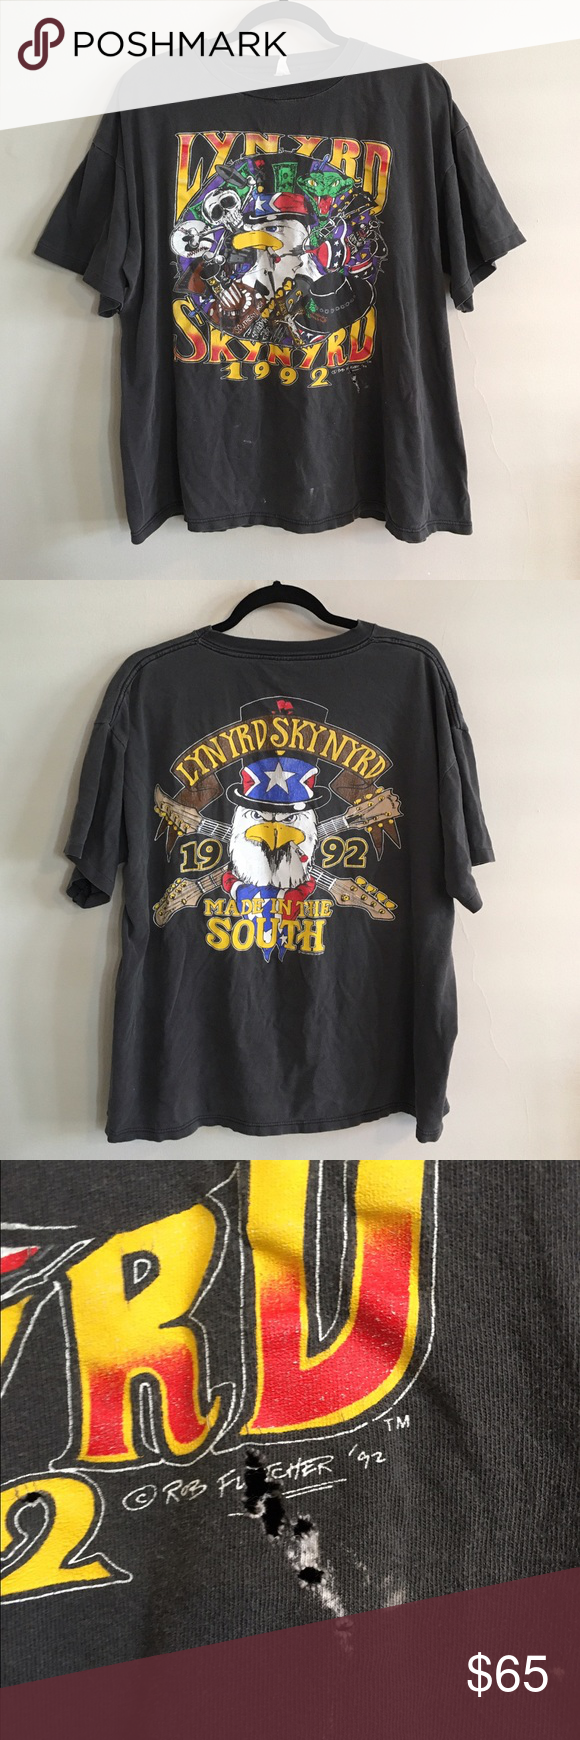 4cc15081b89d70 Vintage Lynyrd Skynyrd Tour T-shirt Authentic vintage 80s 90s Lynyrd  Skynyrd Country Southern Concert Shirt Vintage Tops Tees - Short Sleeve